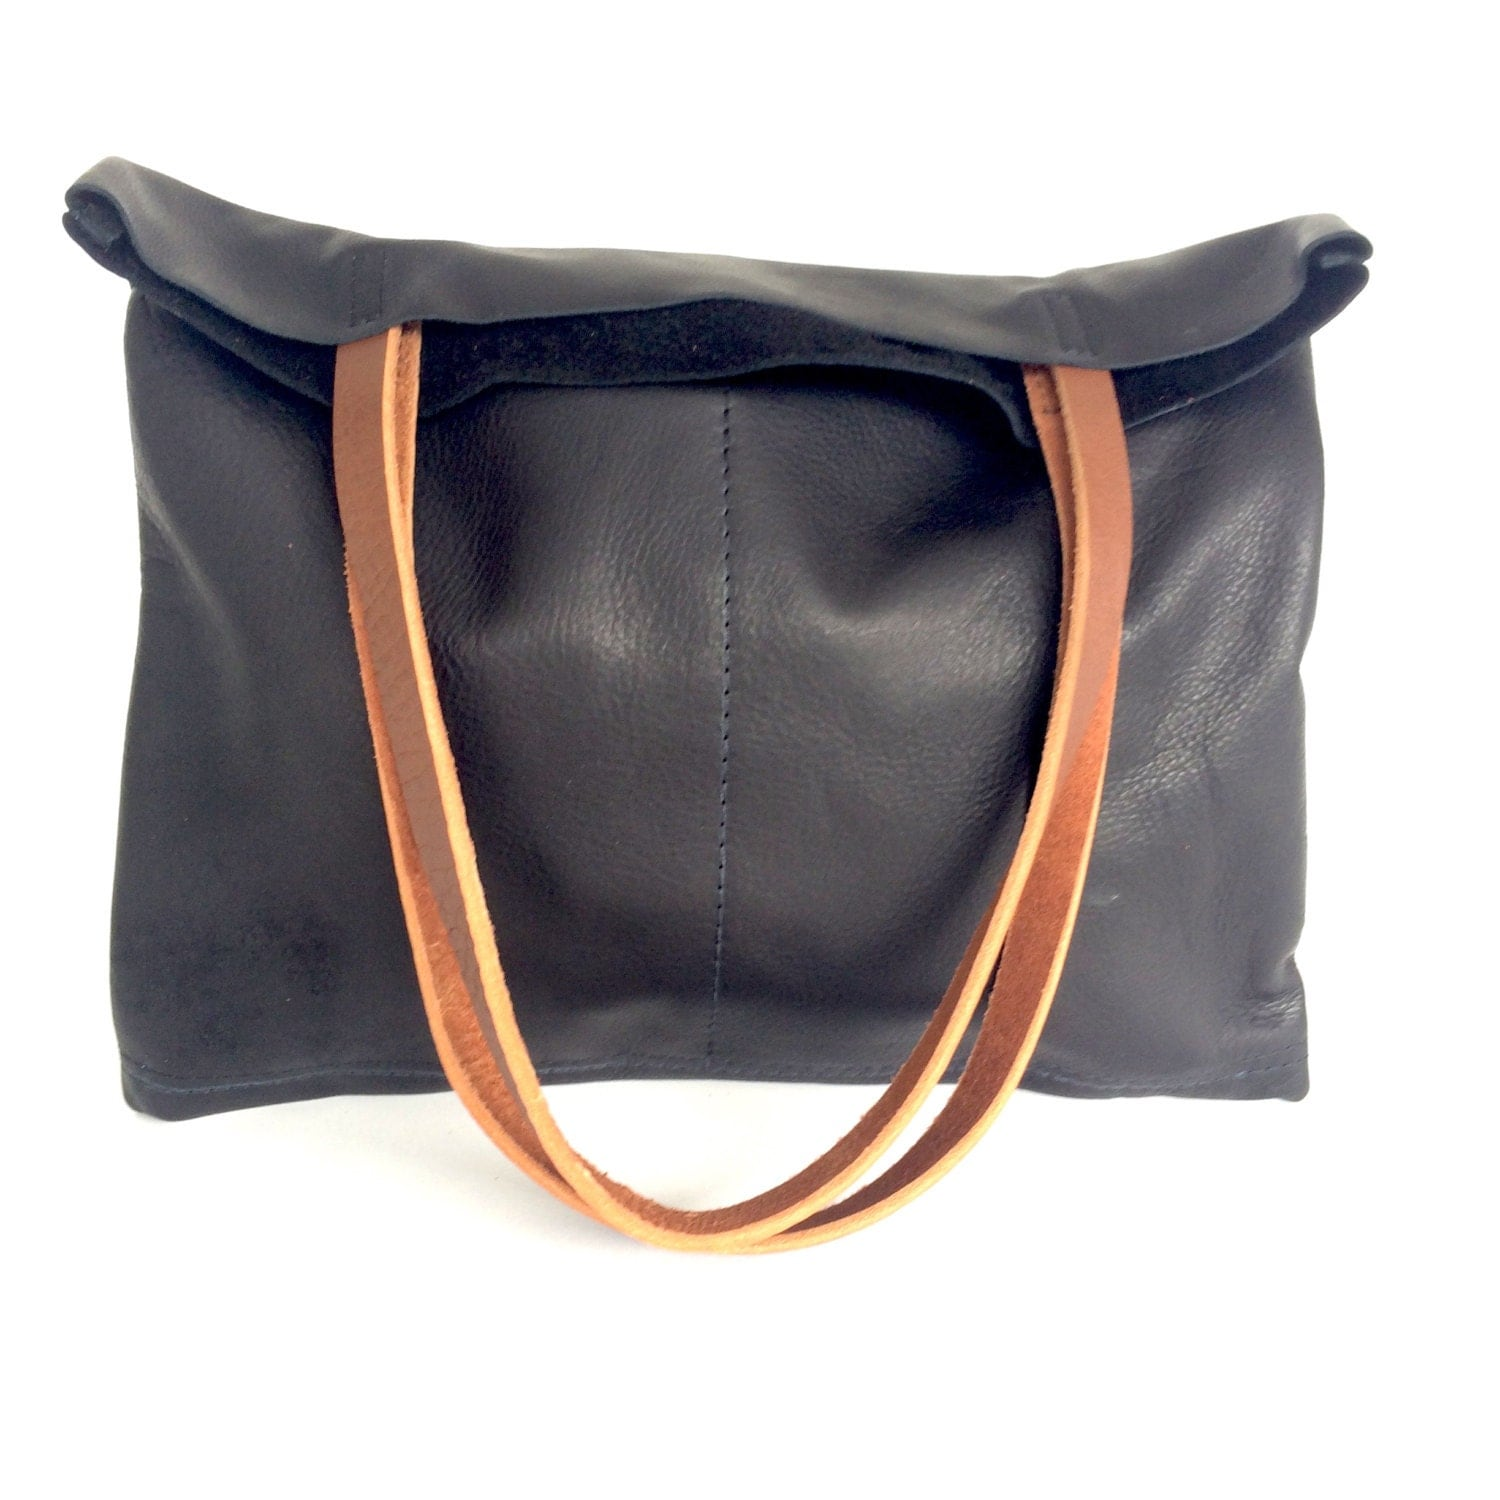 Black and brown Leather Tote Bag Simple Black Leather Bag